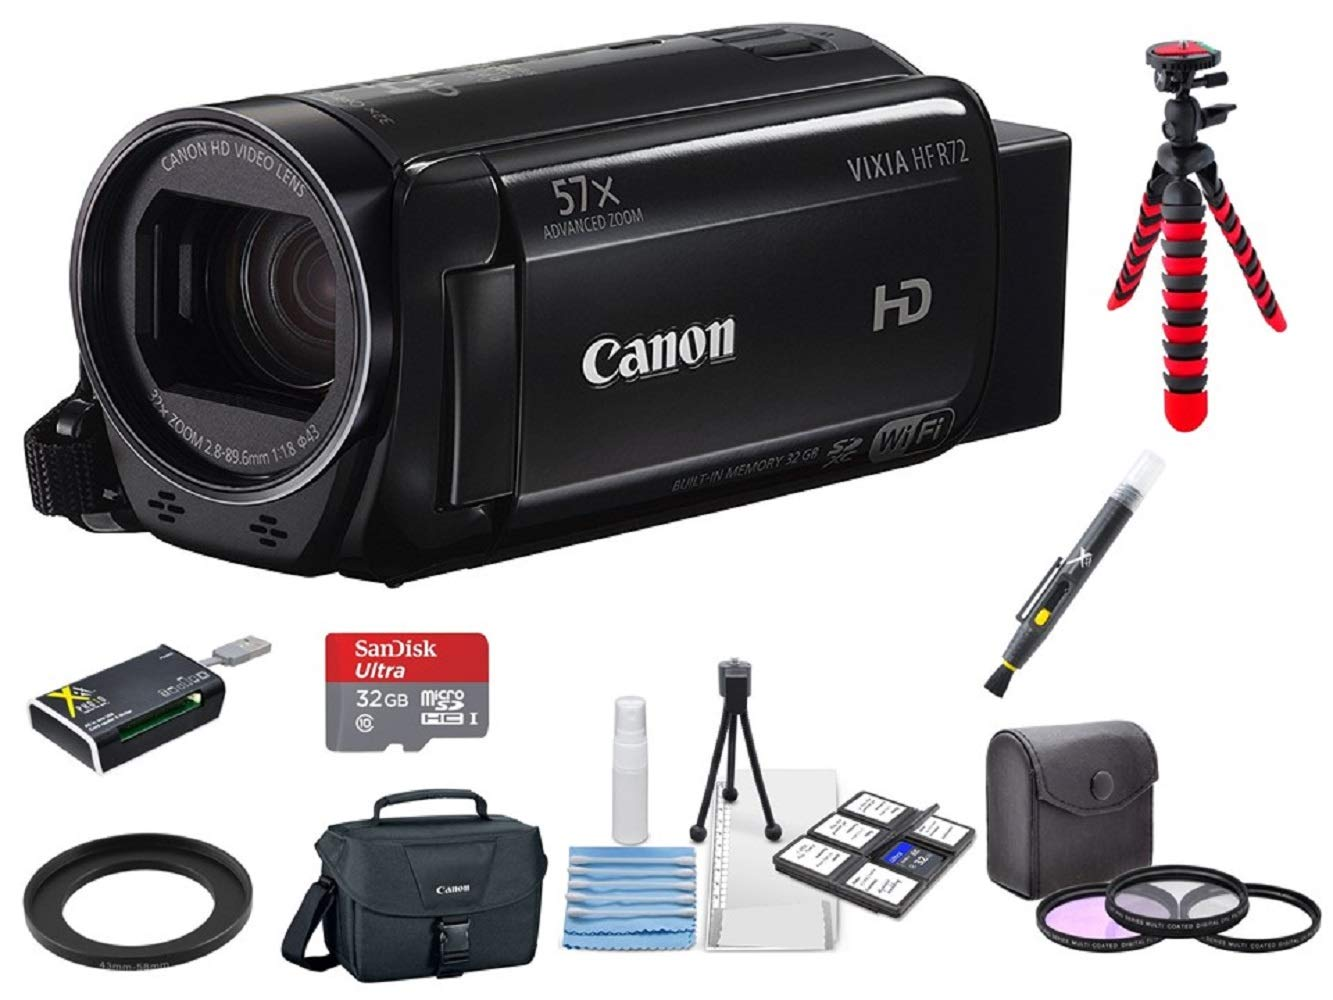 Canon VIXIA HF R72 Camcorder + 3PC Filter Kit + 2 Tripods + 32GB microSD Card + Step up Adapter Ring + Camera Bag + Card Reader + 6PC Cleaning Kit + 2-in-1 Lens Cleaning Pen by Hawthorne